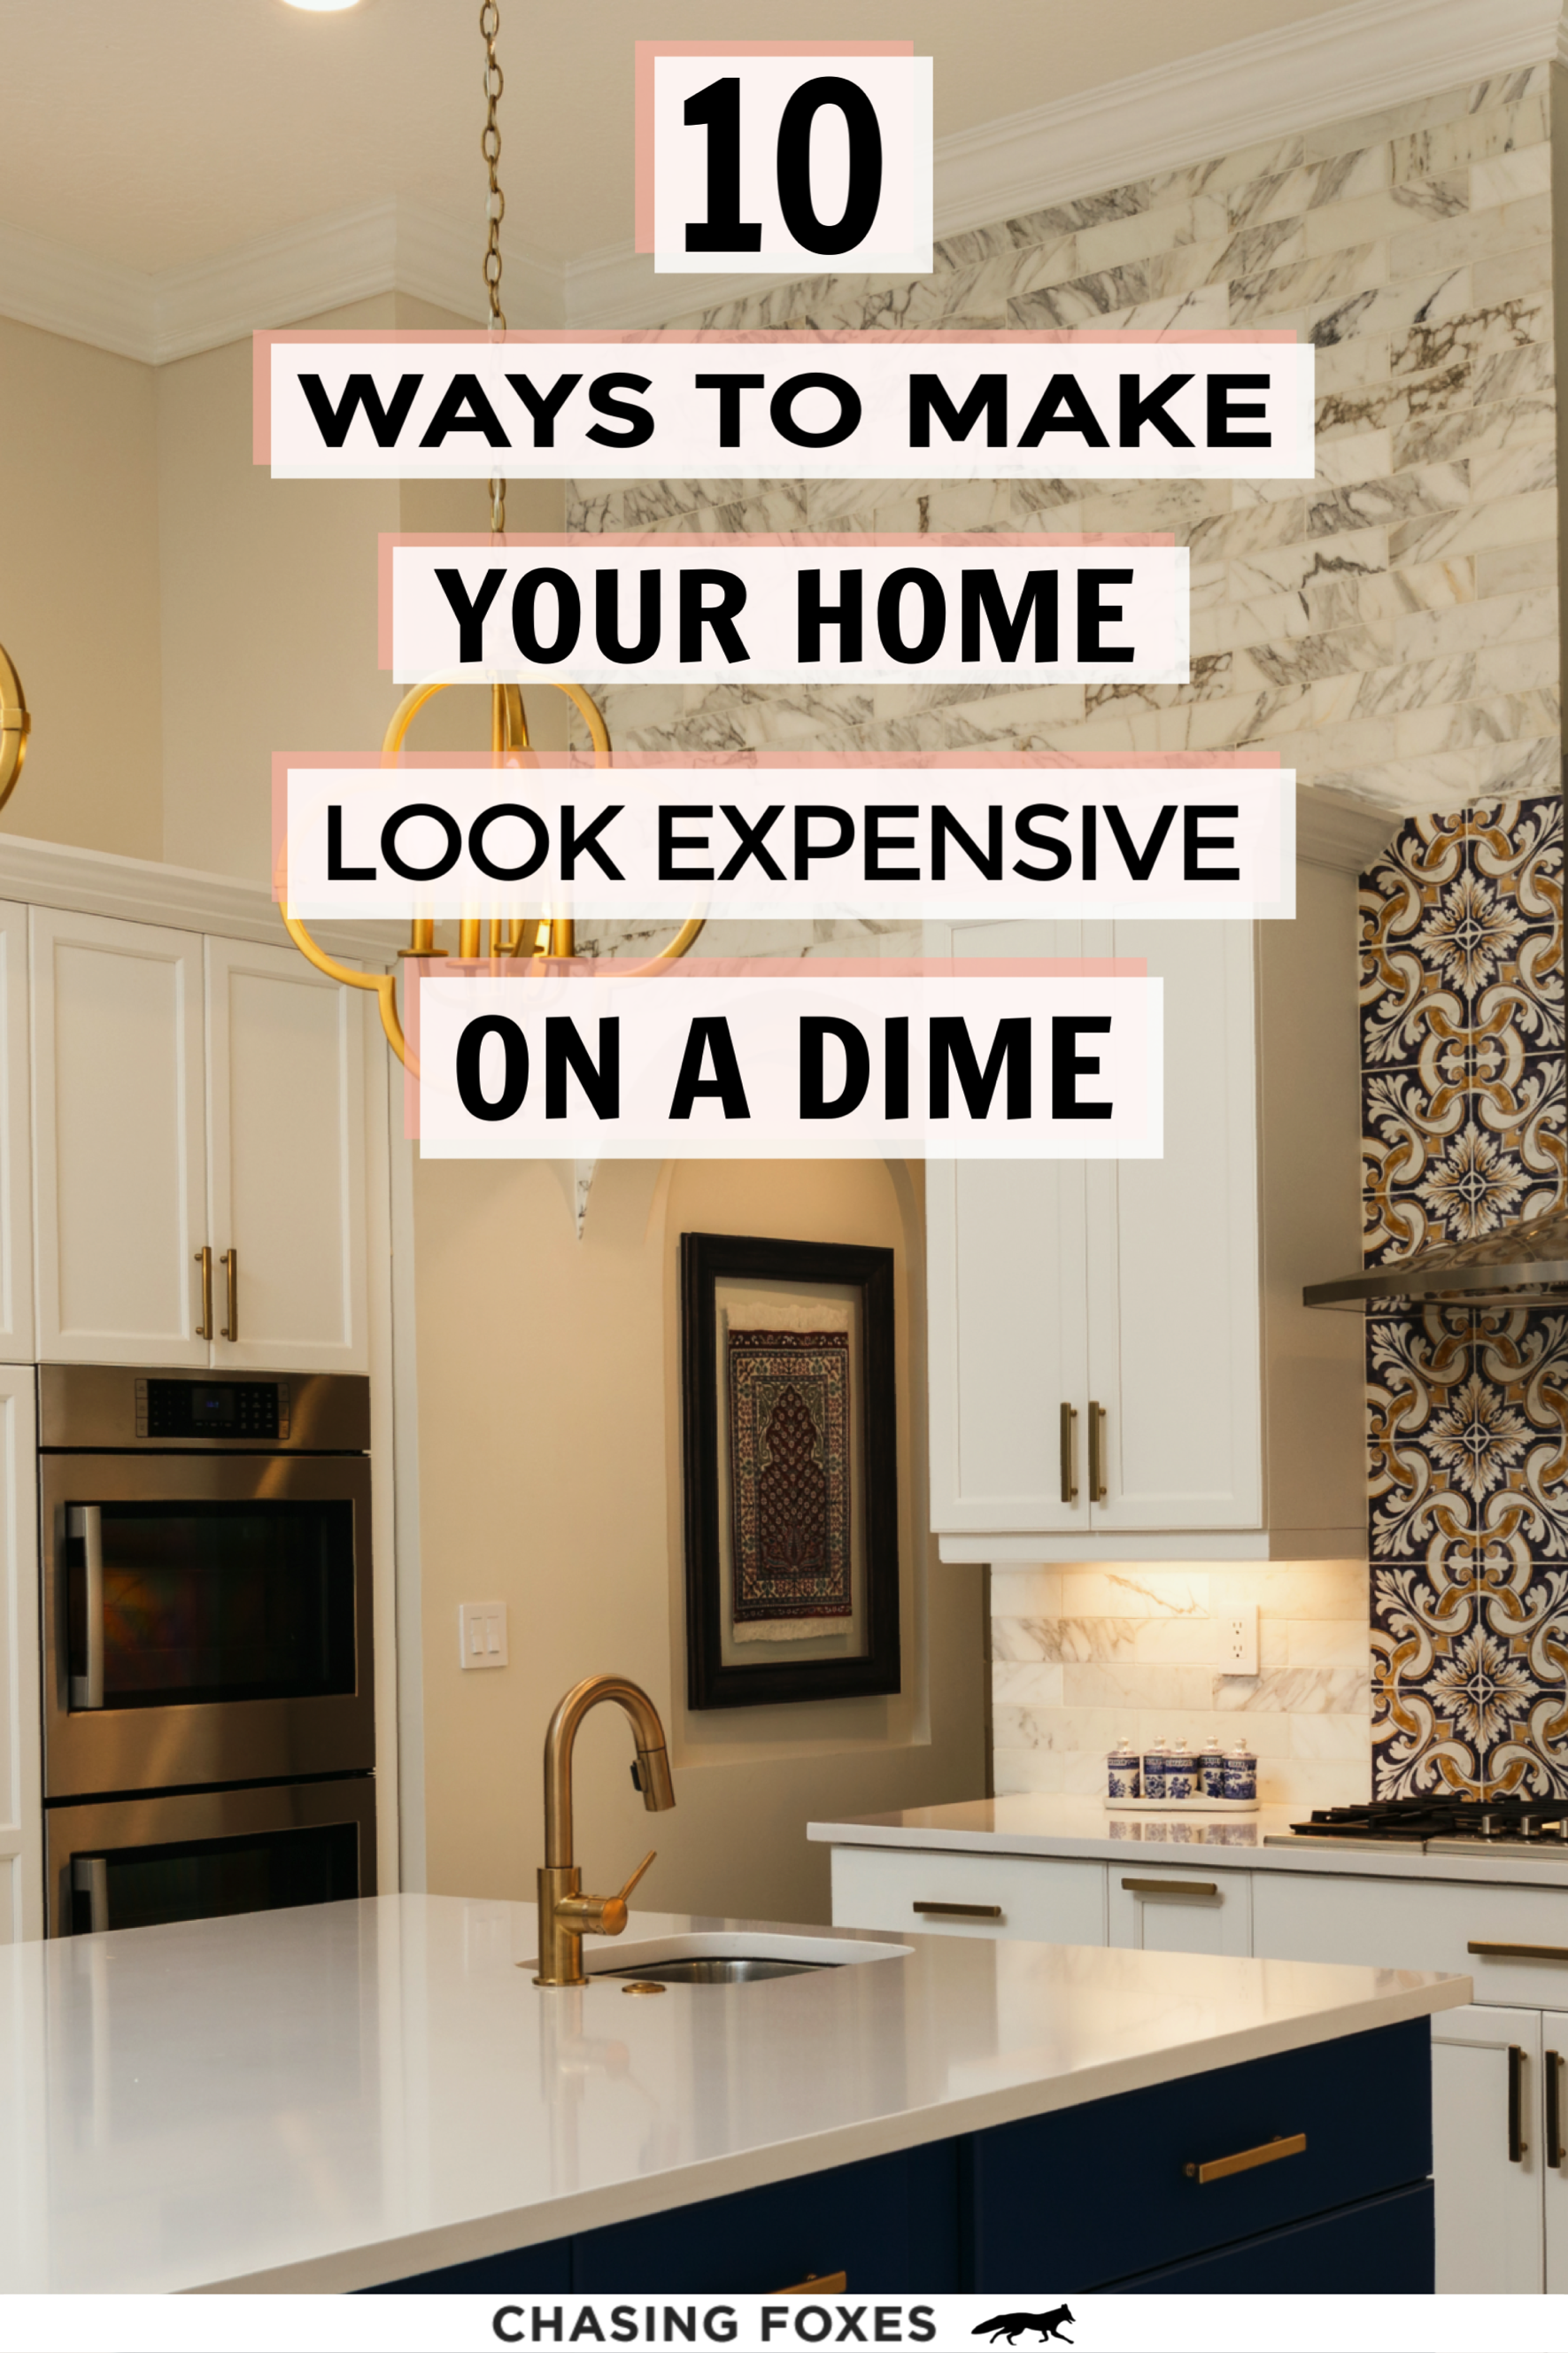 10 Awesome Cheap Home Decor Hacks And Tips In 2020 Home Decor Hacks Home Home Decor